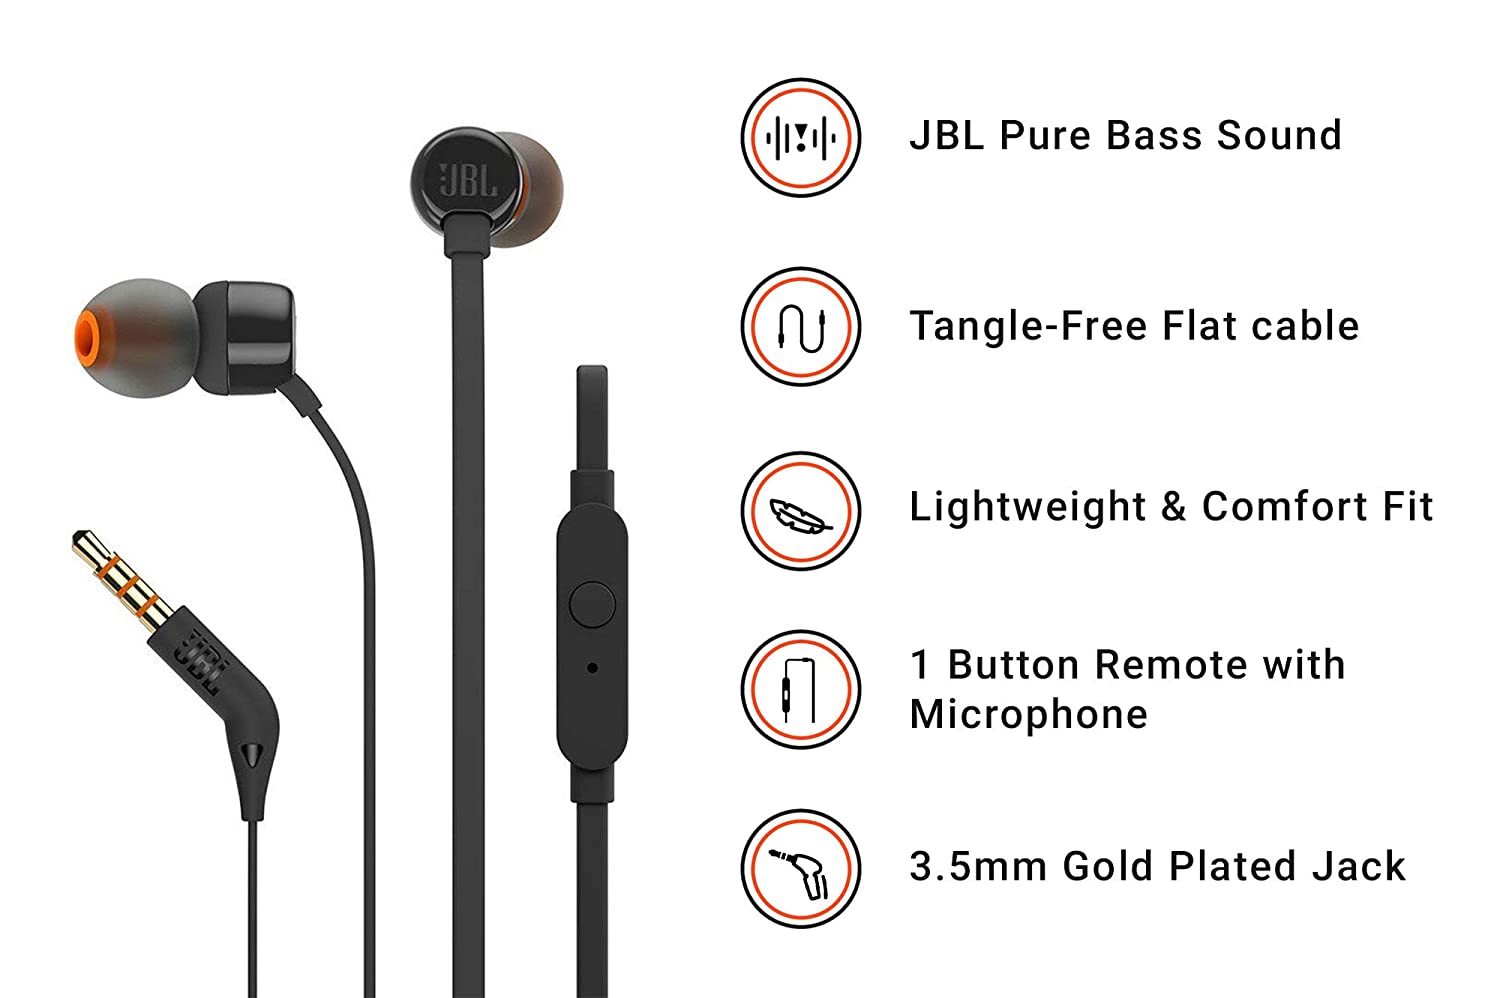 6e06bdd2c31 JBL T160 in-Ear Headphones with Mic (Black): Buy JBL T160 in-Ear Headphones  with Mic (Black) Online at Low Price in India - Amazon.in